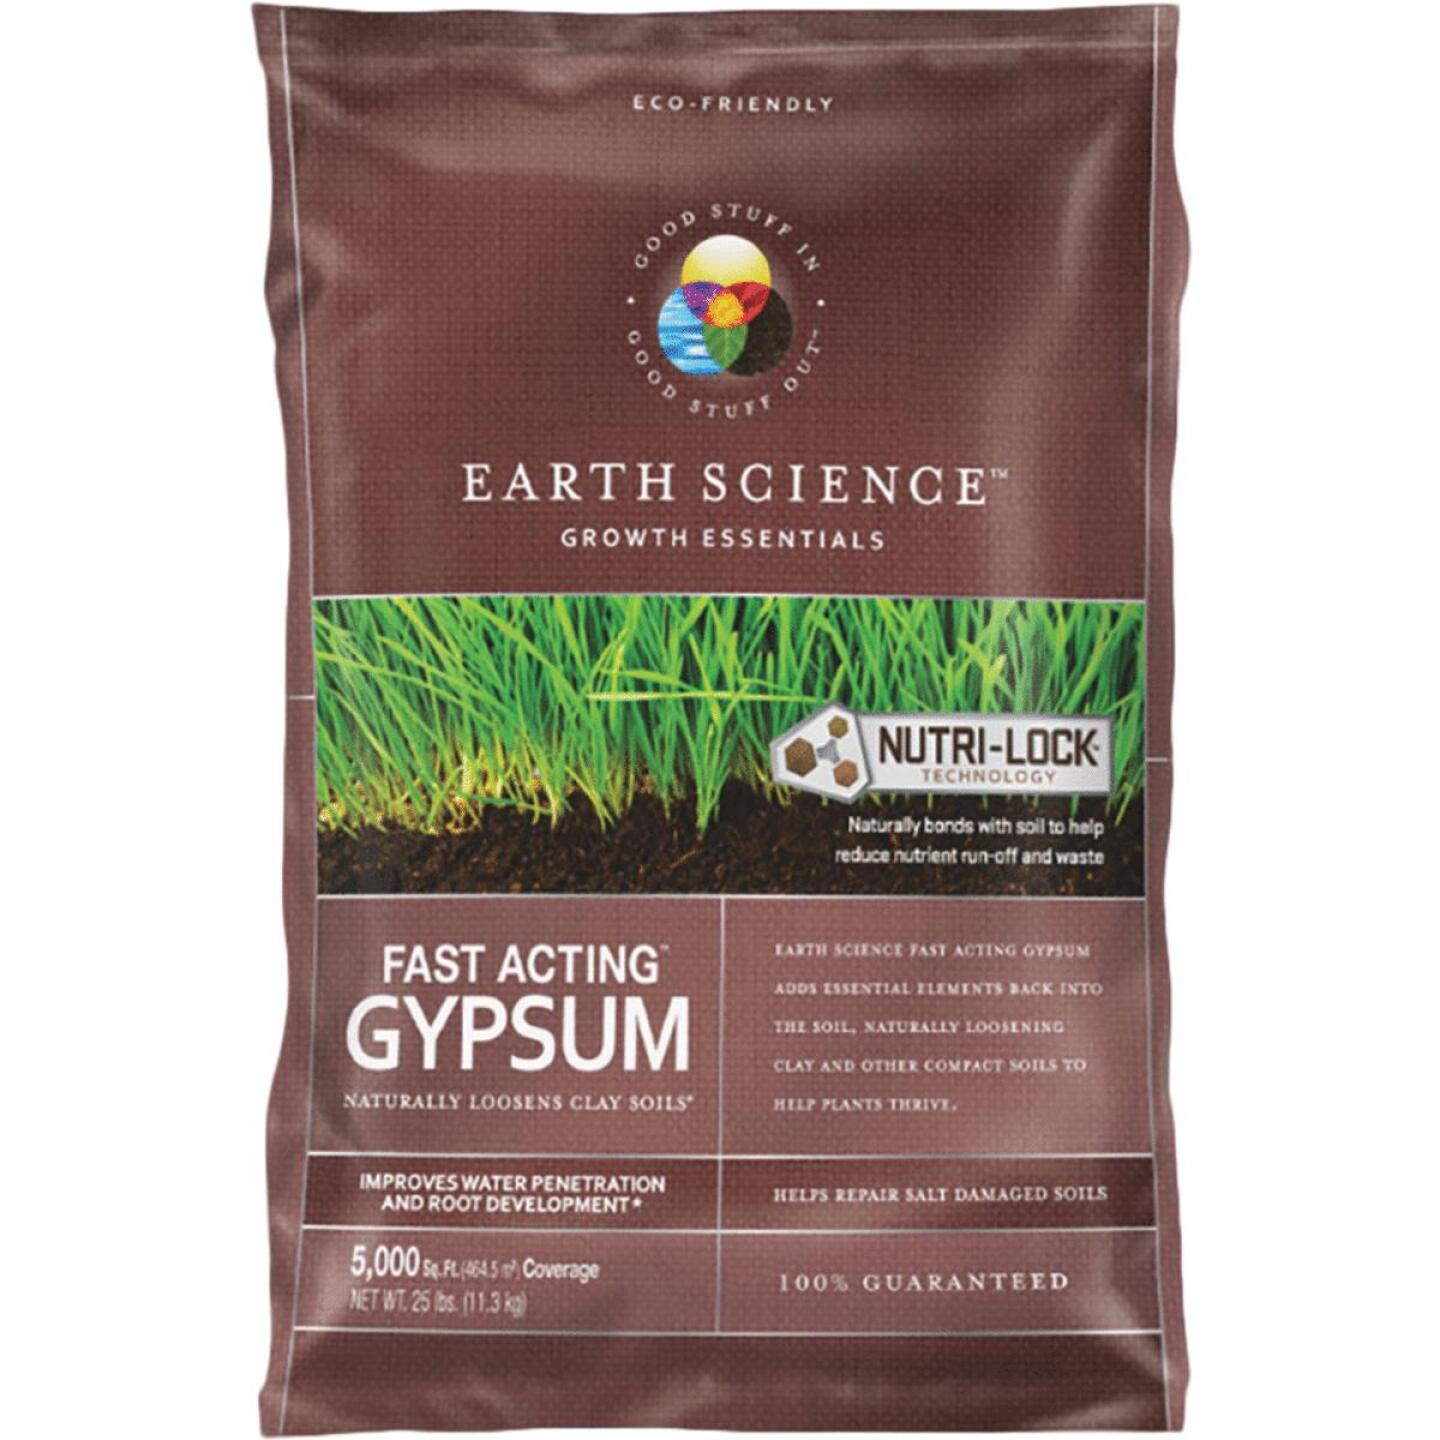 Earth Science 25 Lb. 5000 Sq. Ft. Coverage Fast Acting Gypsum Image 1